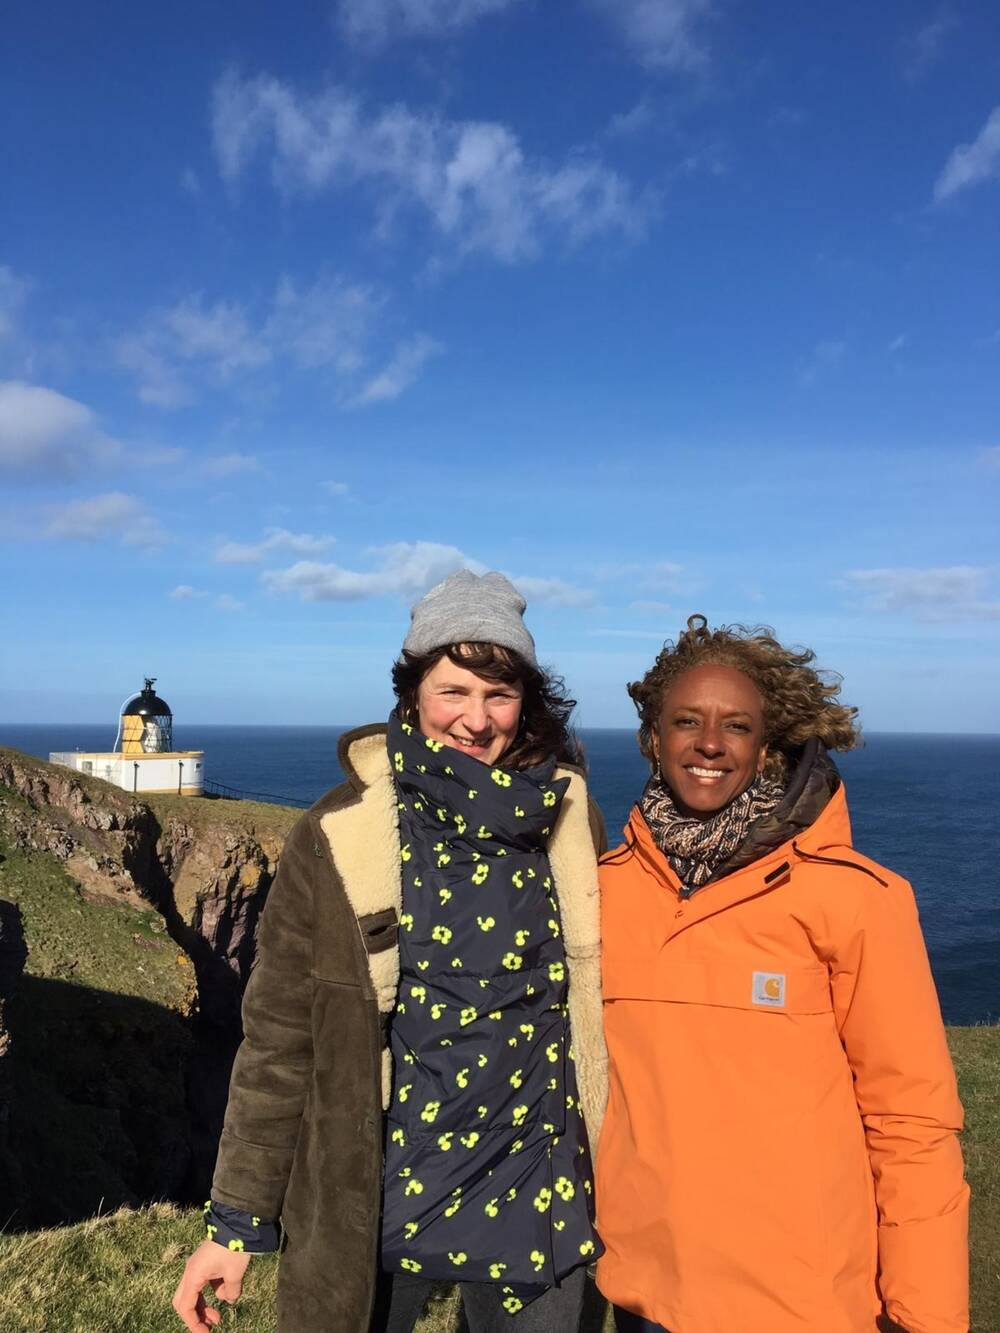 Sarah and Gillian stand on the cliffs at St Abb's Head with the lighthouse in the background.